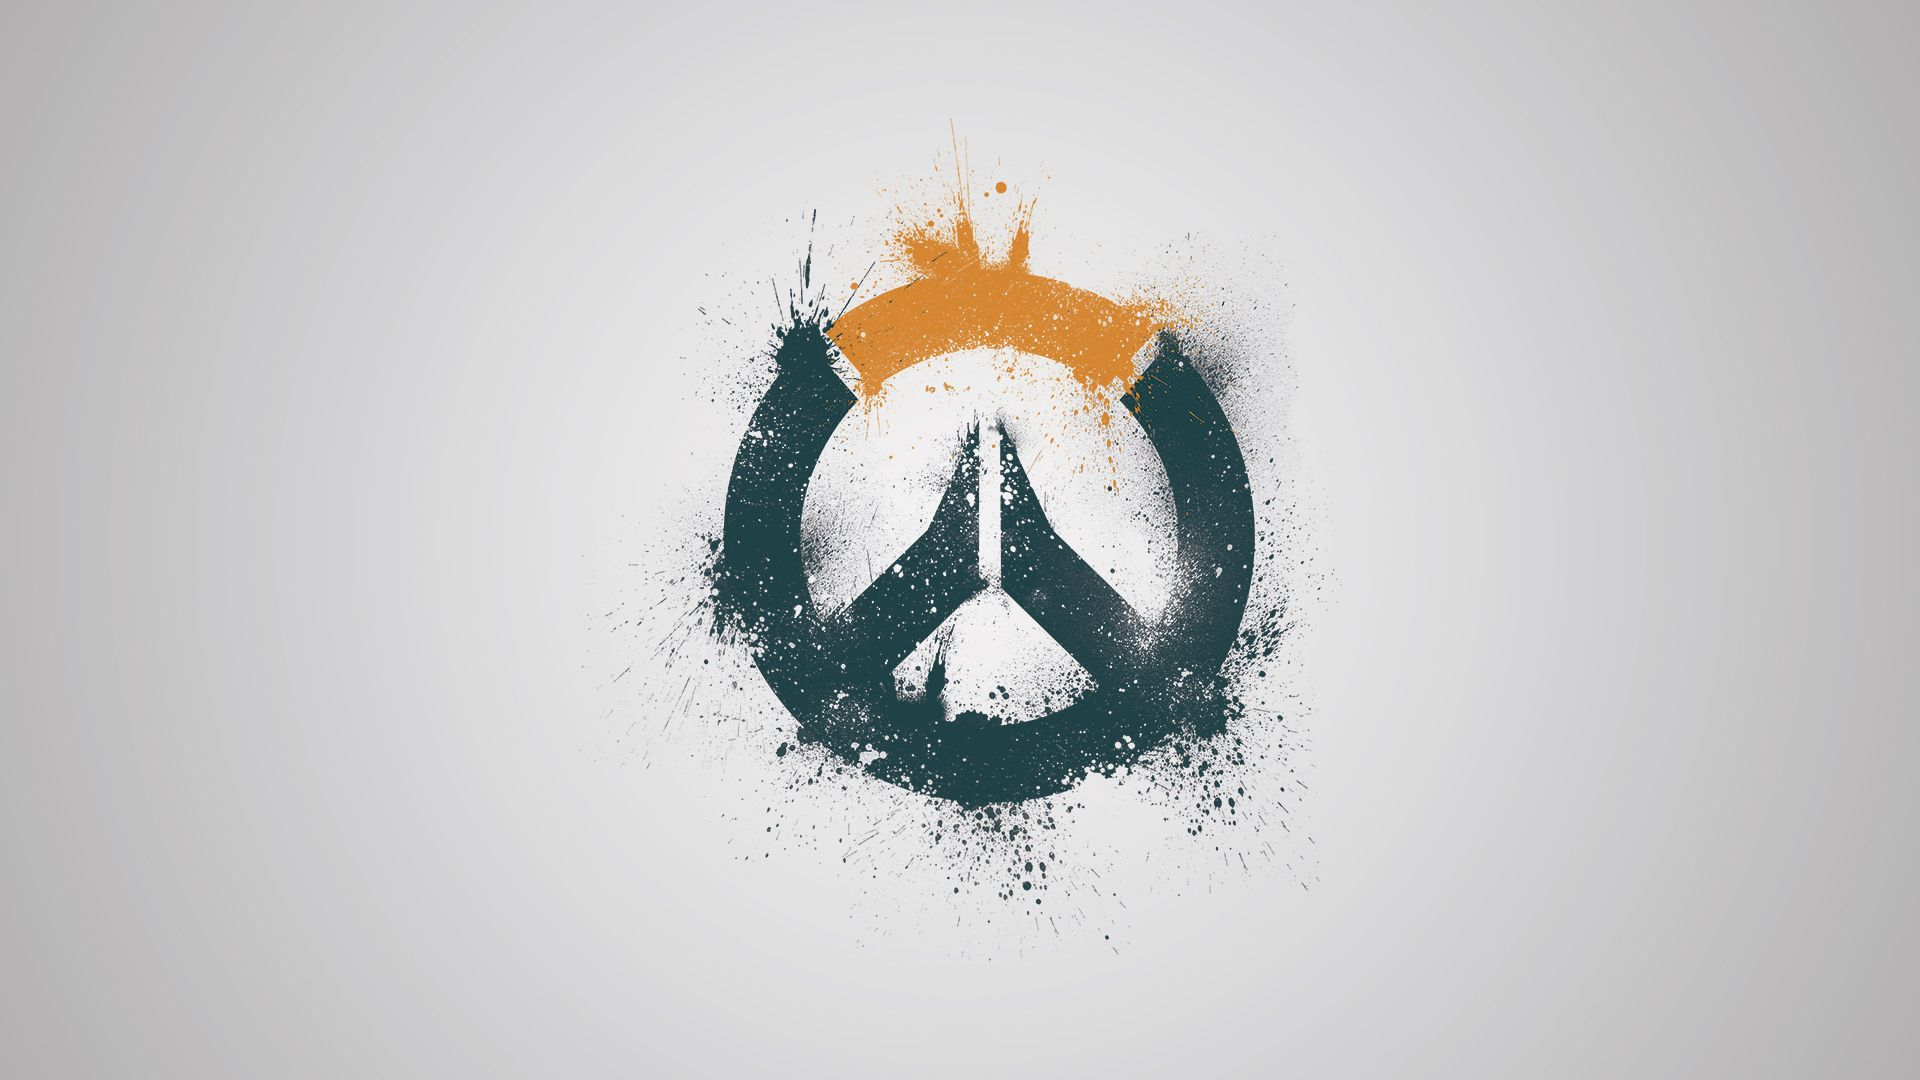 Pin By Cool Phone Wallpapers On 15 Overwatch Overwatch Wallpapers Logo Wallpaper Hd Overwatch